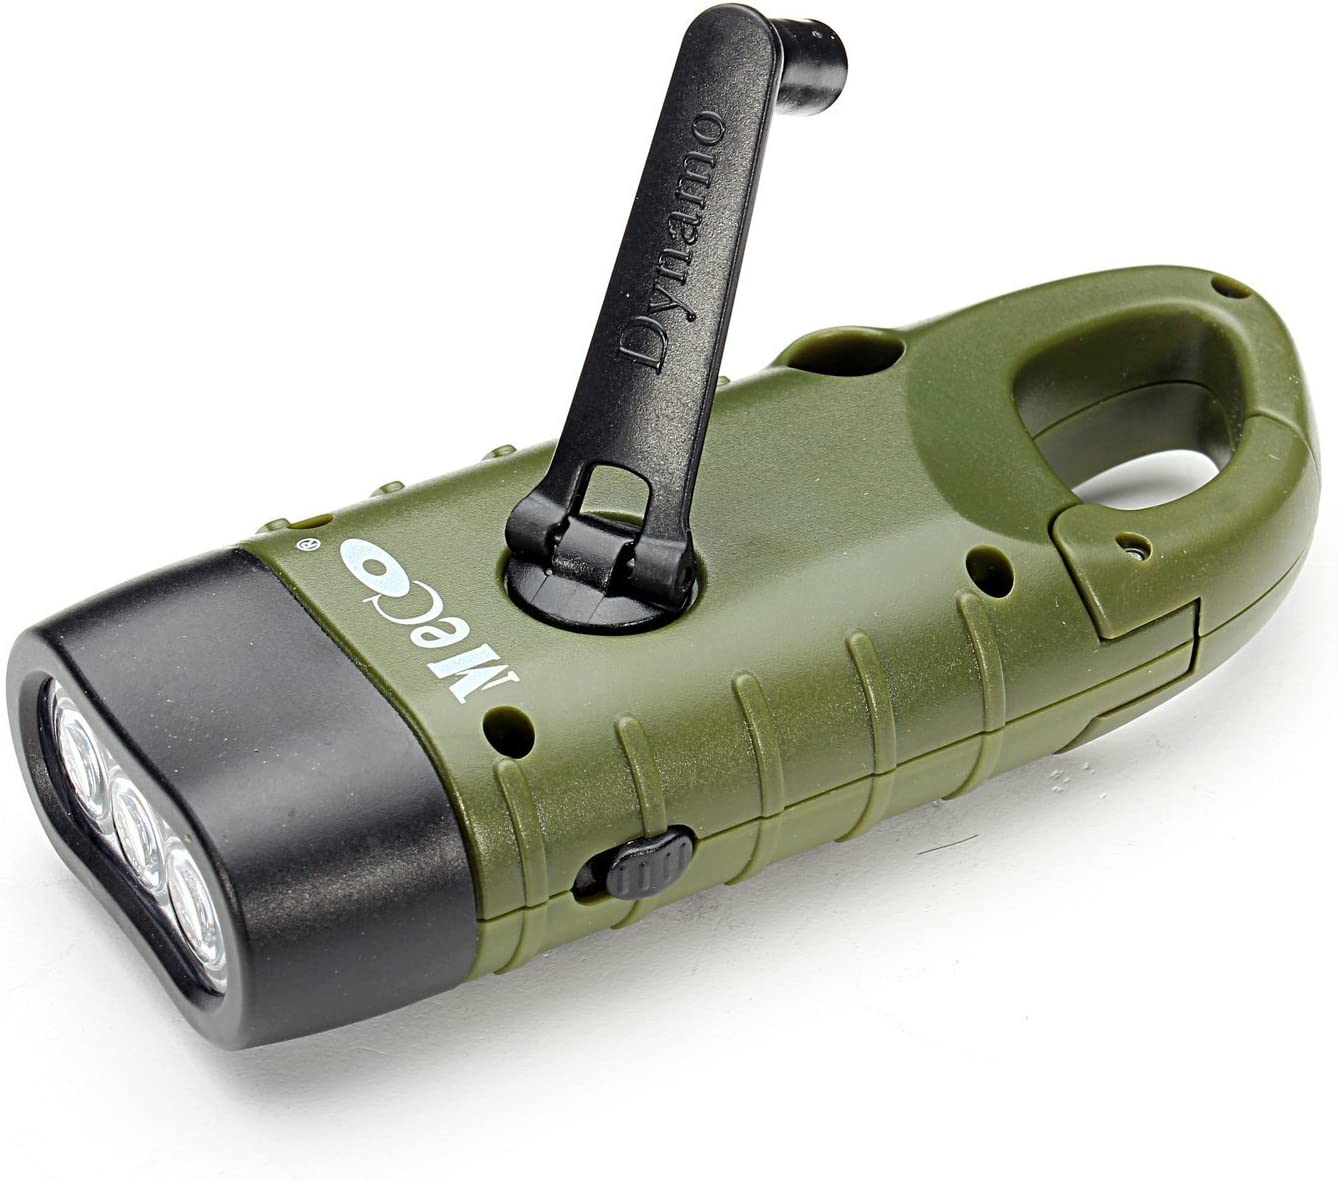 Image of a MECO handcrank flashlight in moss green color.